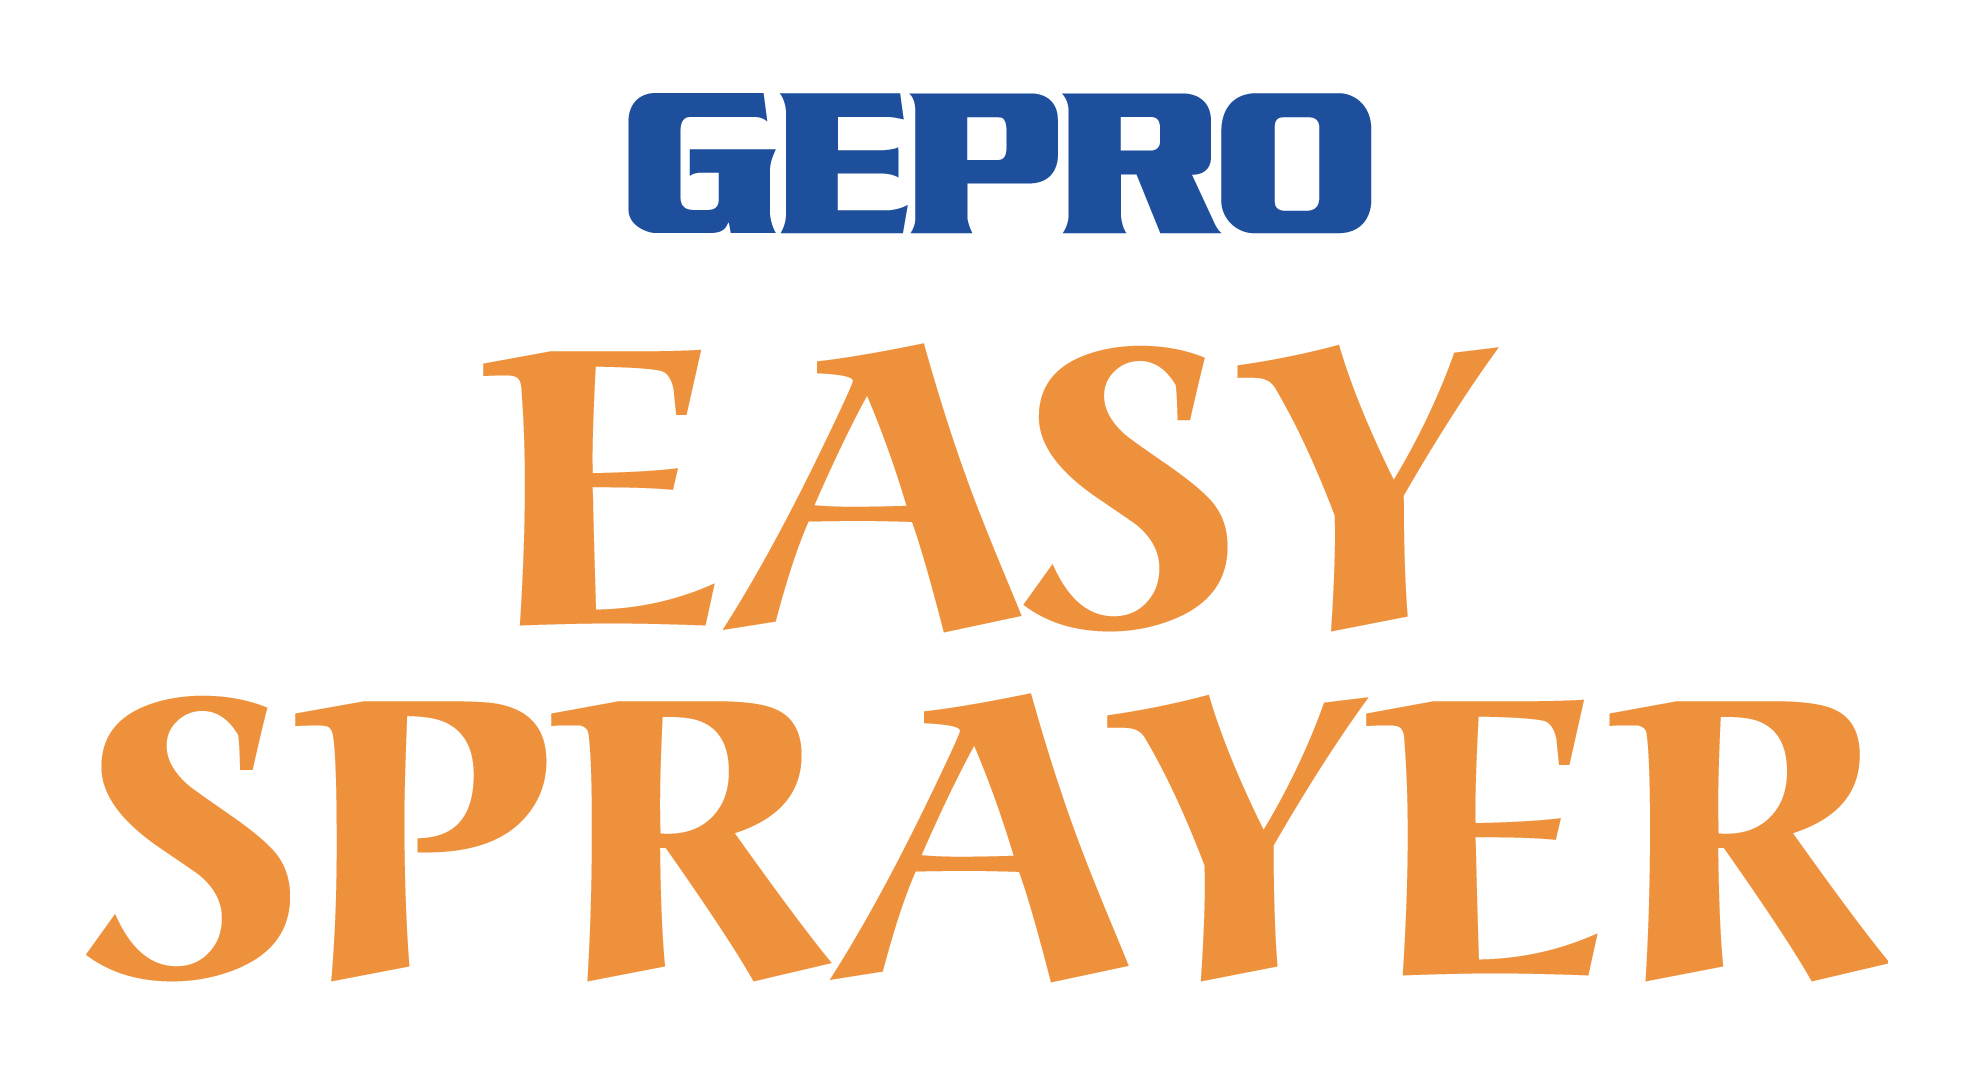 GEPRO Easy Sprayer Logo